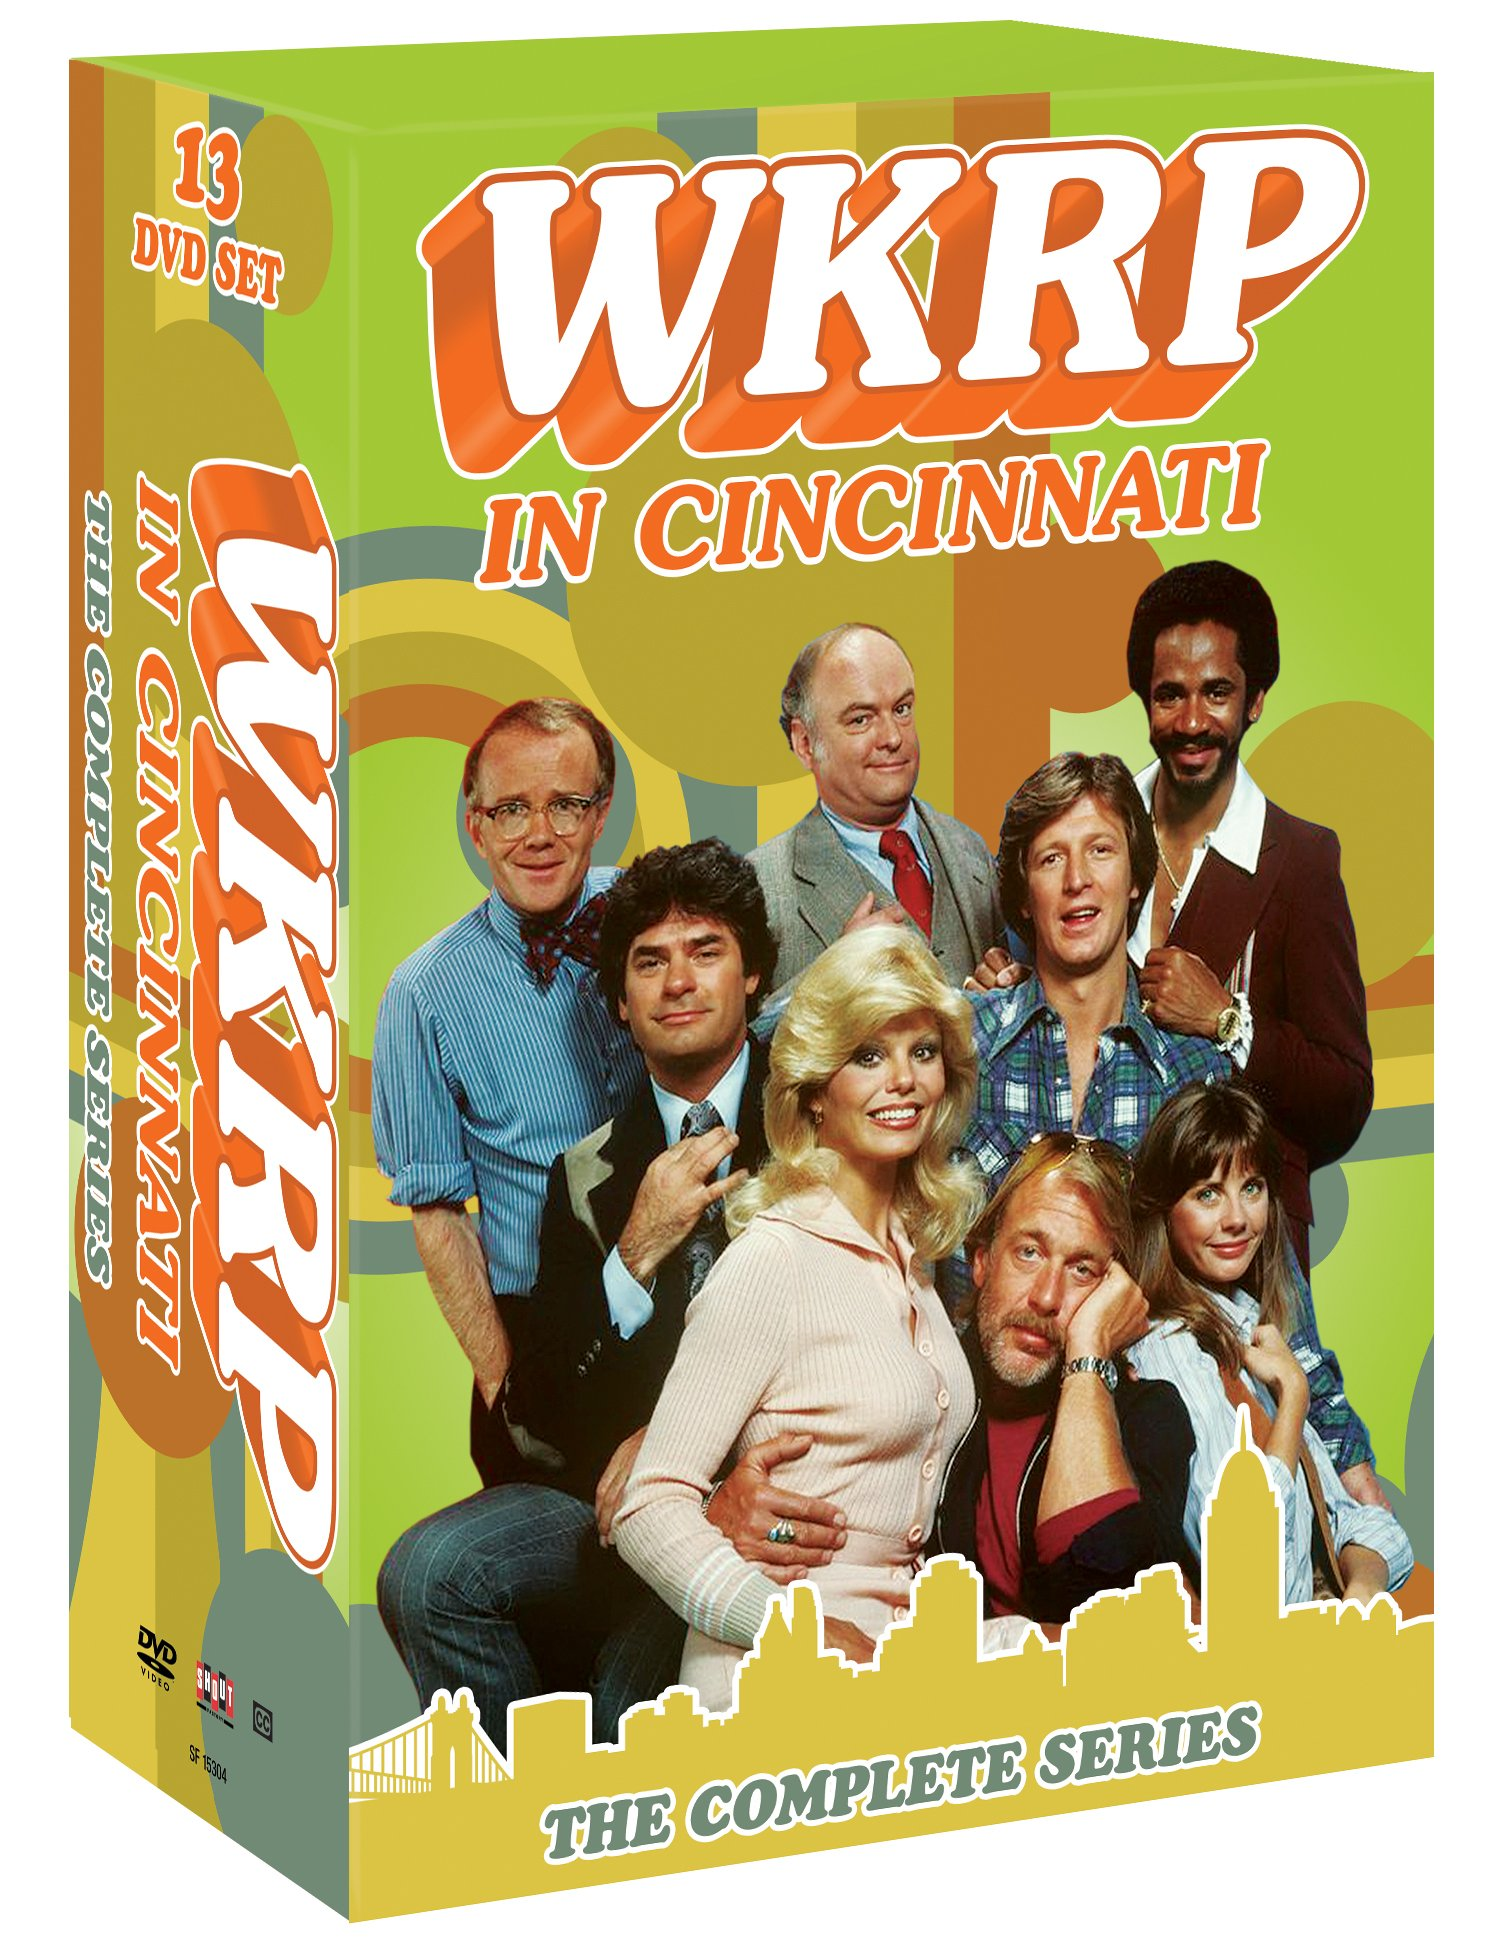 WKRP In Cincinnati: The Complete Series by Shout! Factory